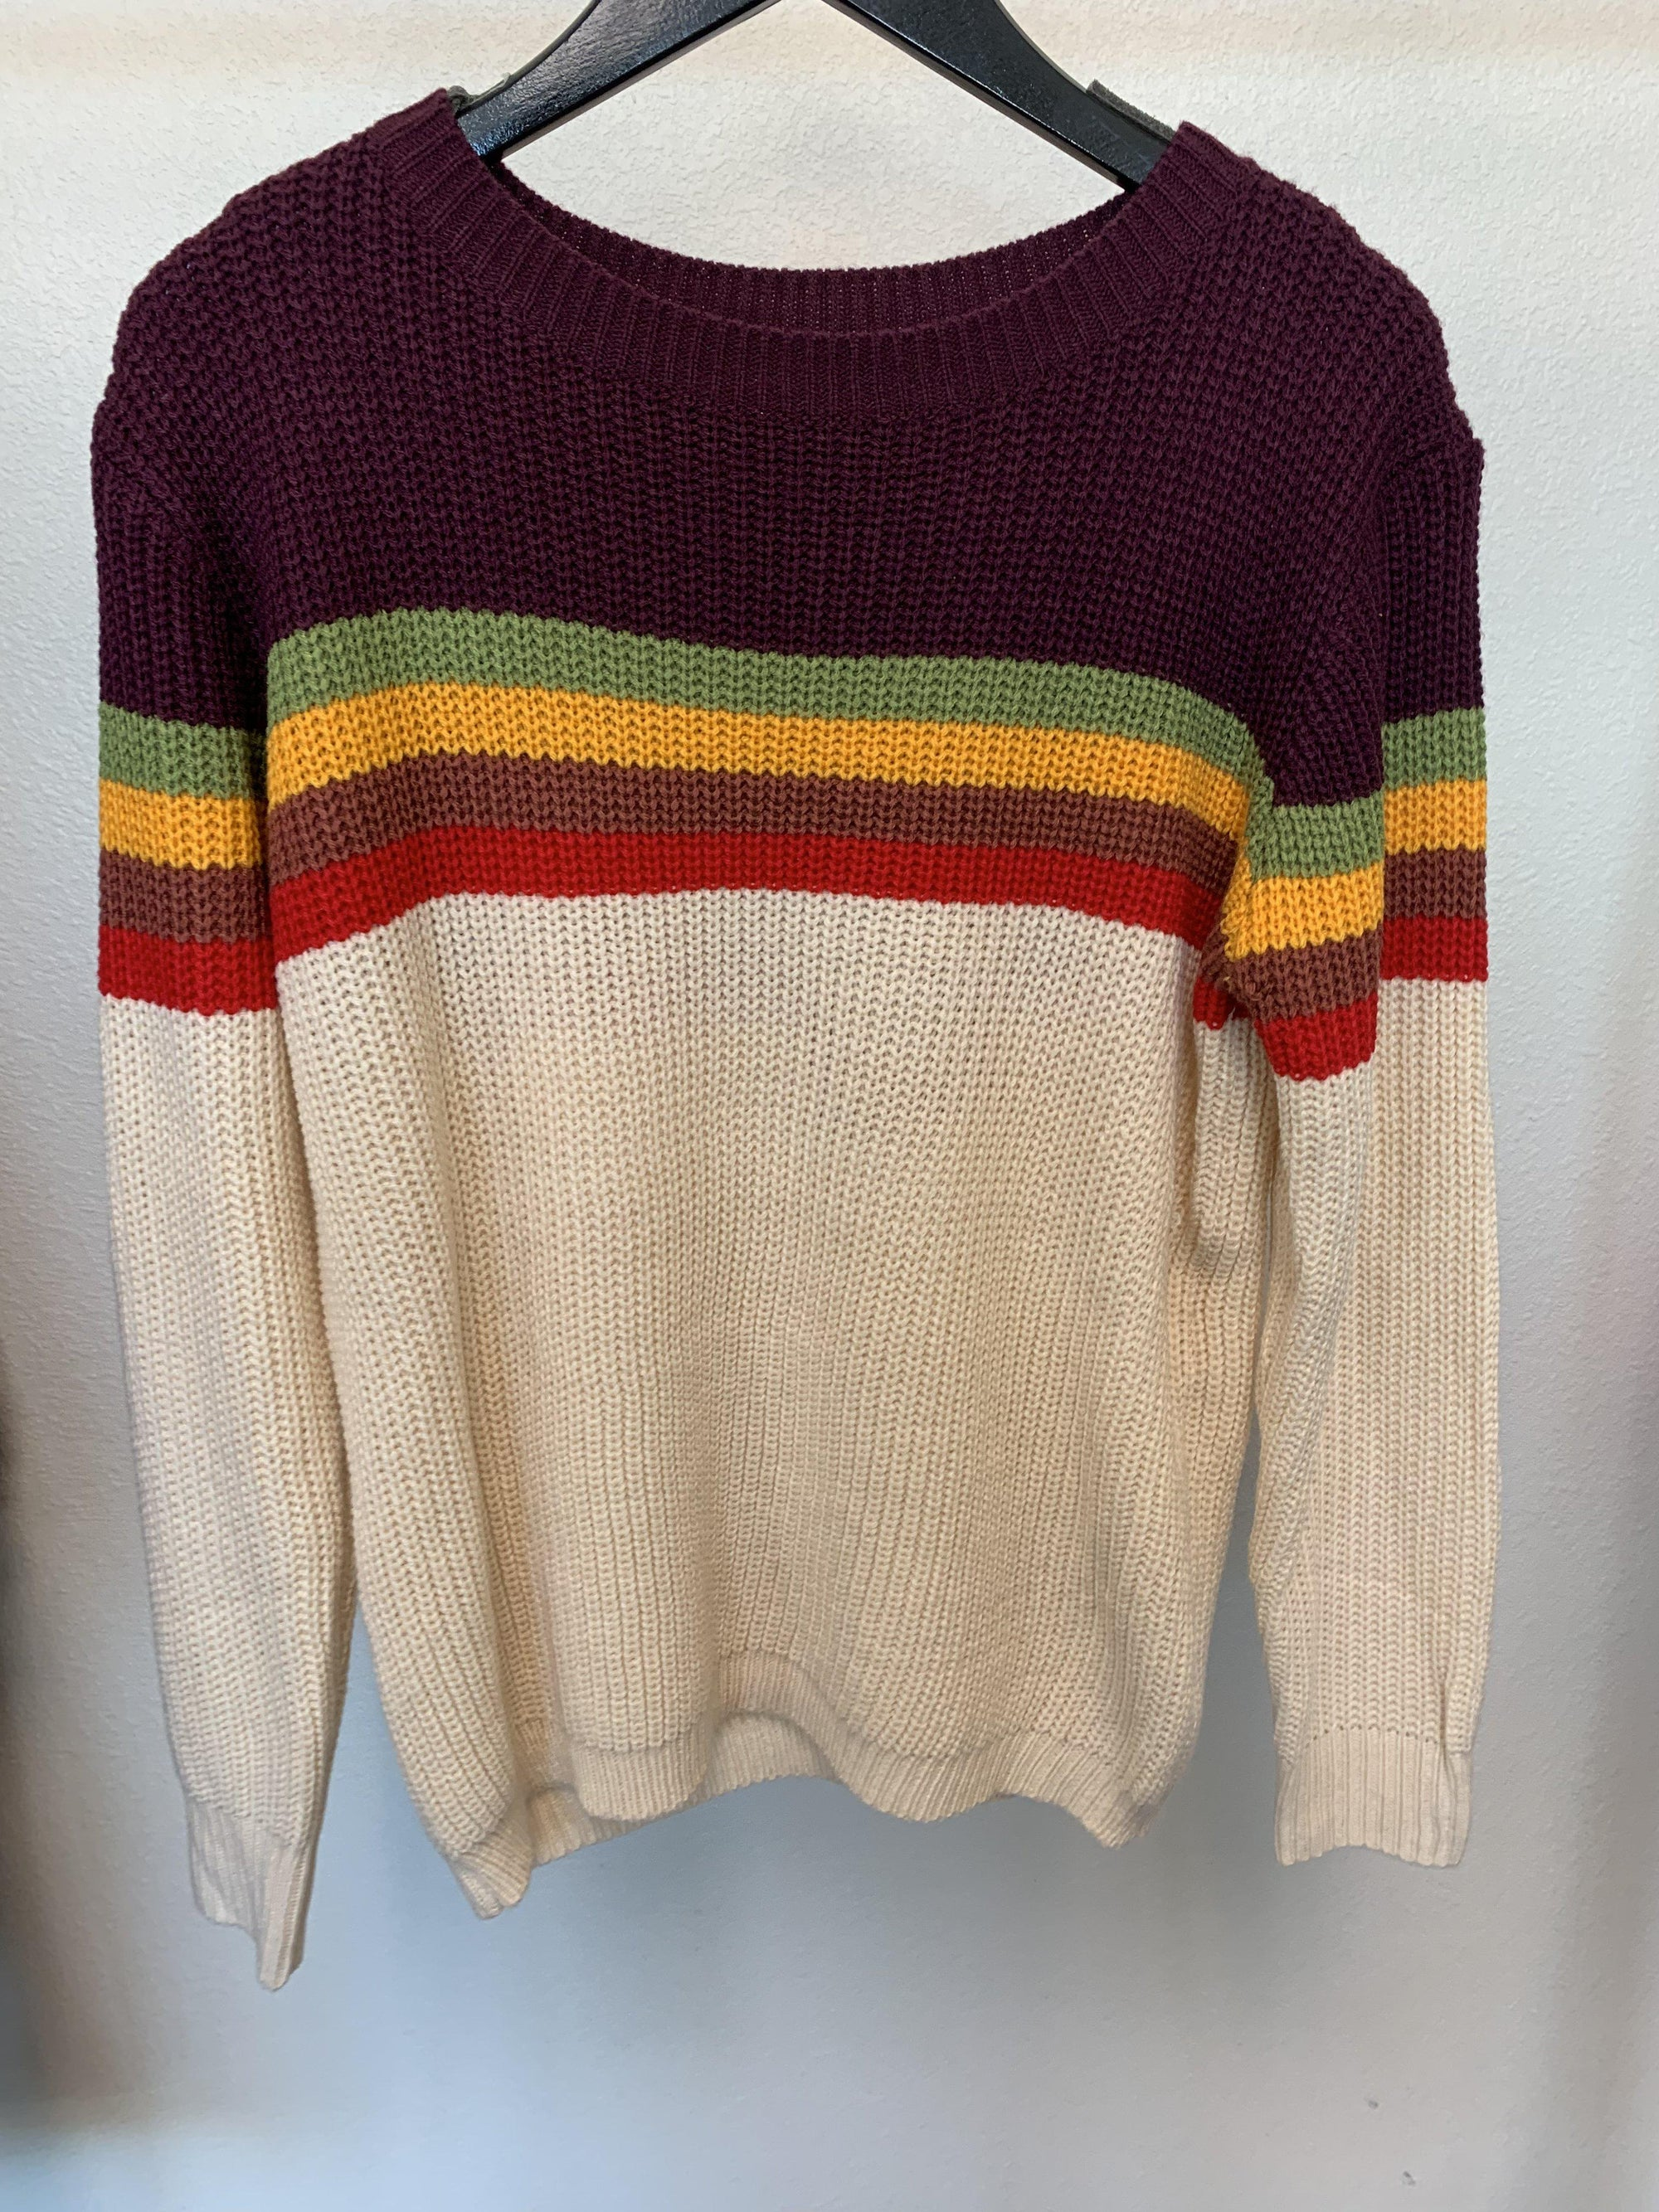 Colorful Commotion Sweater-Women's SALE-New Arrivals-Runway Seven